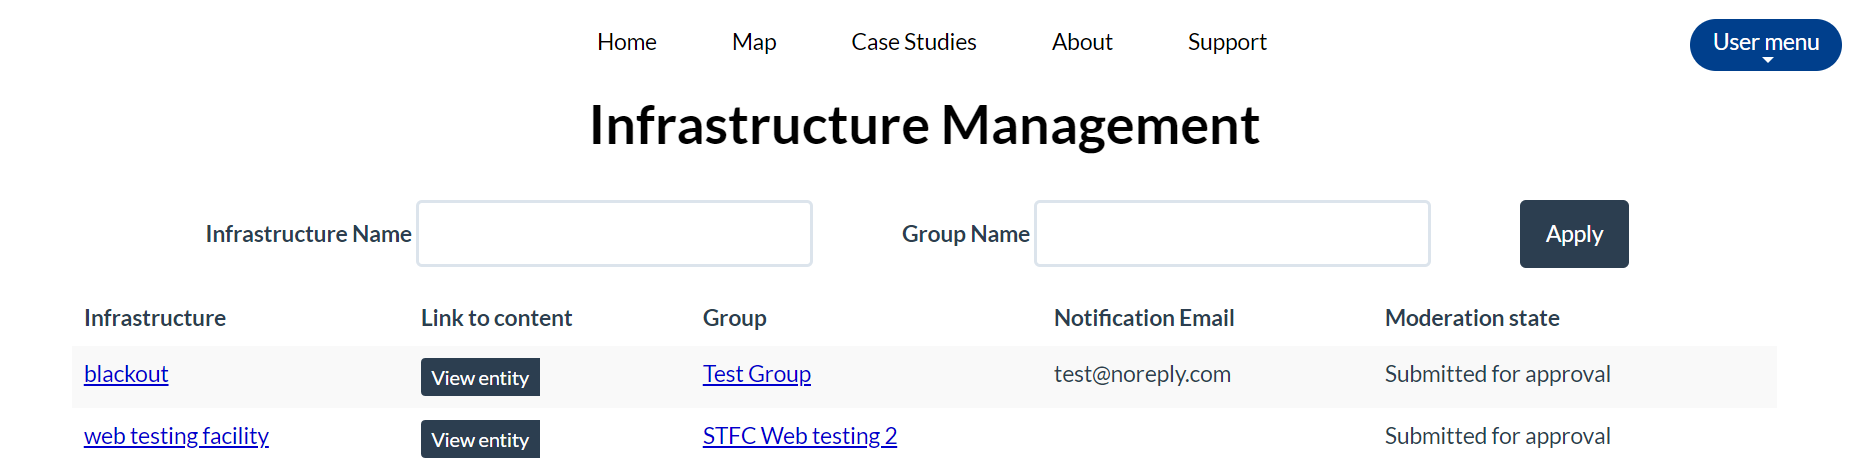 infrastructure management page screenshot